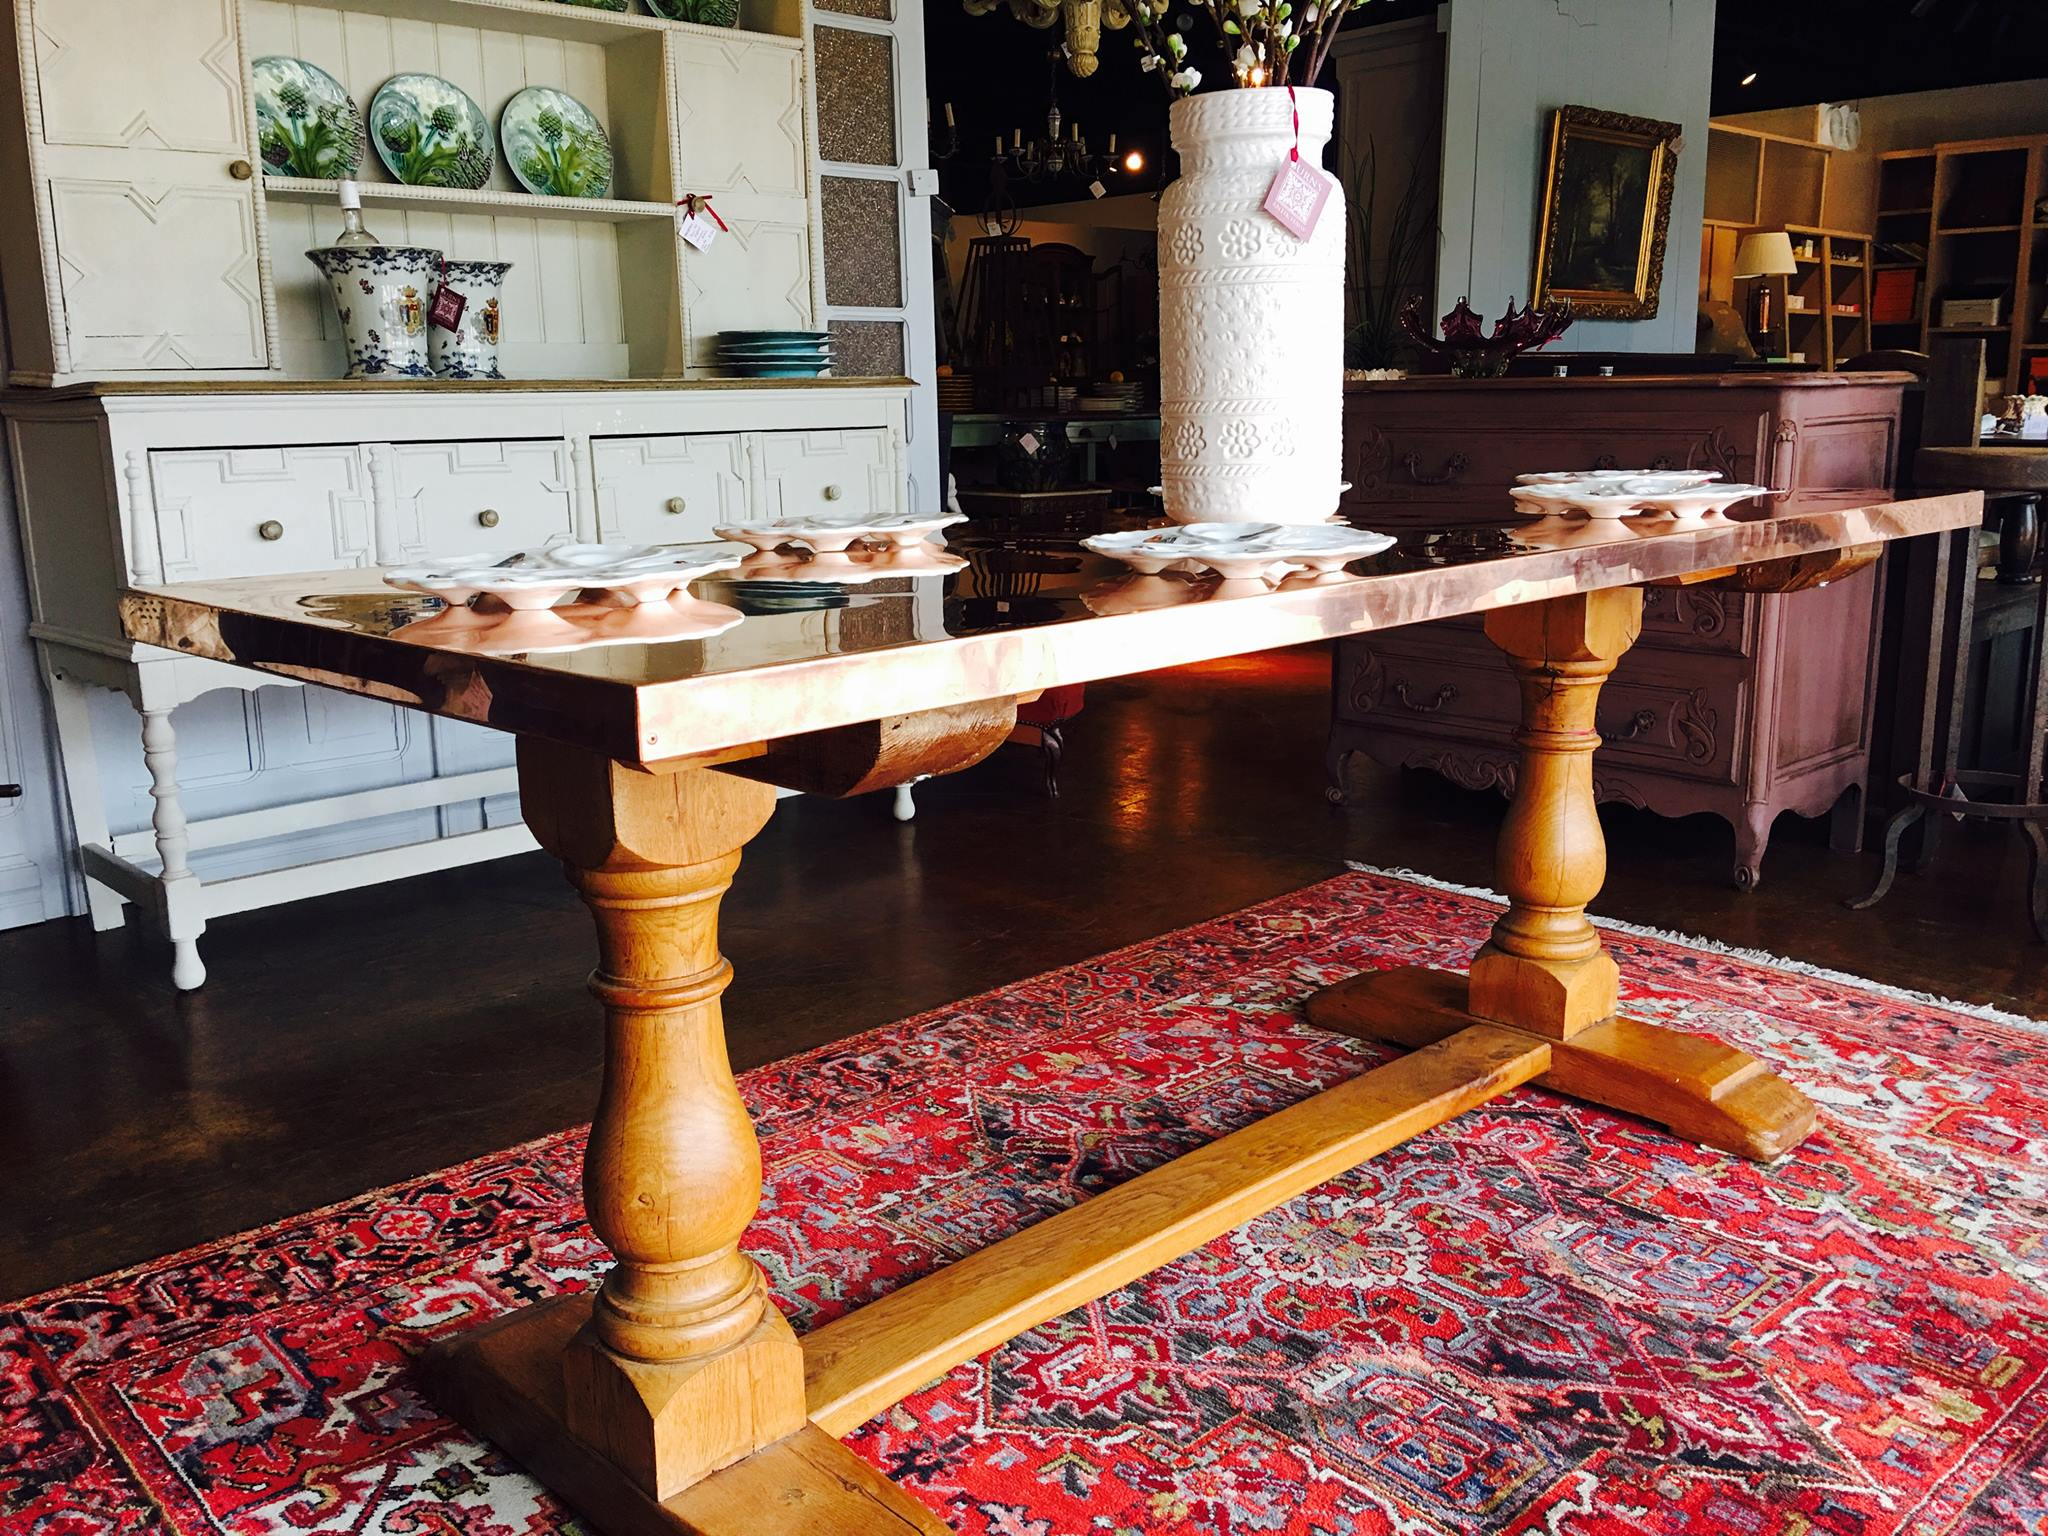 Just arrived, copper topped ship salvage solid oak trestle table, 250-300 years old! Perfect for your breakfast nook! Stop by and see this gorgeous table in person!!! 2195 Calder Ave, Beaumont Tx 77701, 409.835.3080.  #burnsantikhaus  #europeanimporters  #shopsmall  #vintage